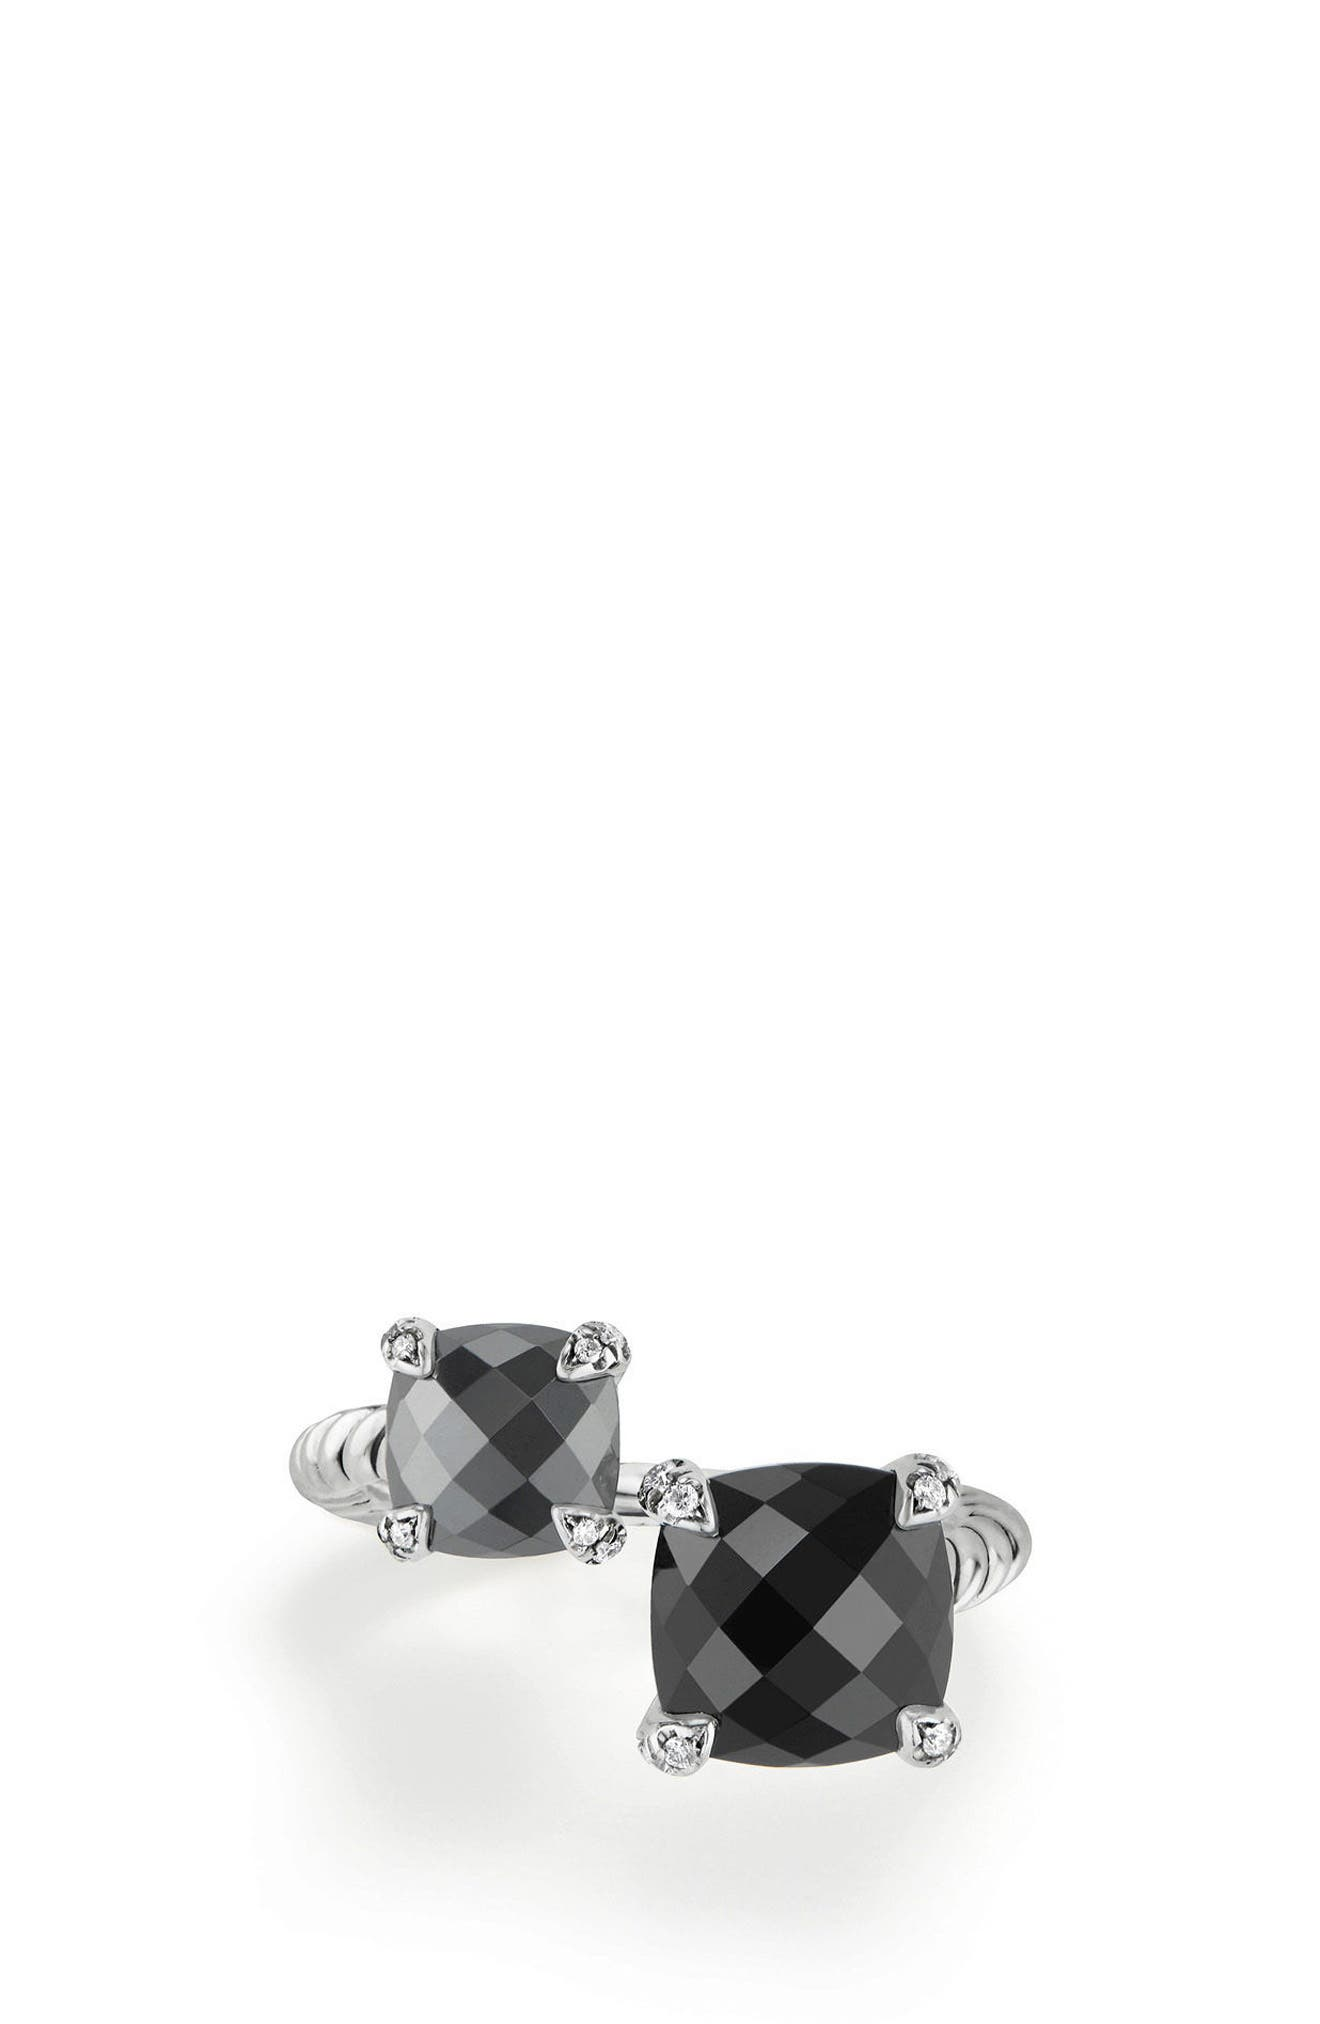 Châtelaine Bypass Ring with Diamonds,                             Alternate thumbnail 3, color,                             BLACK ONYX